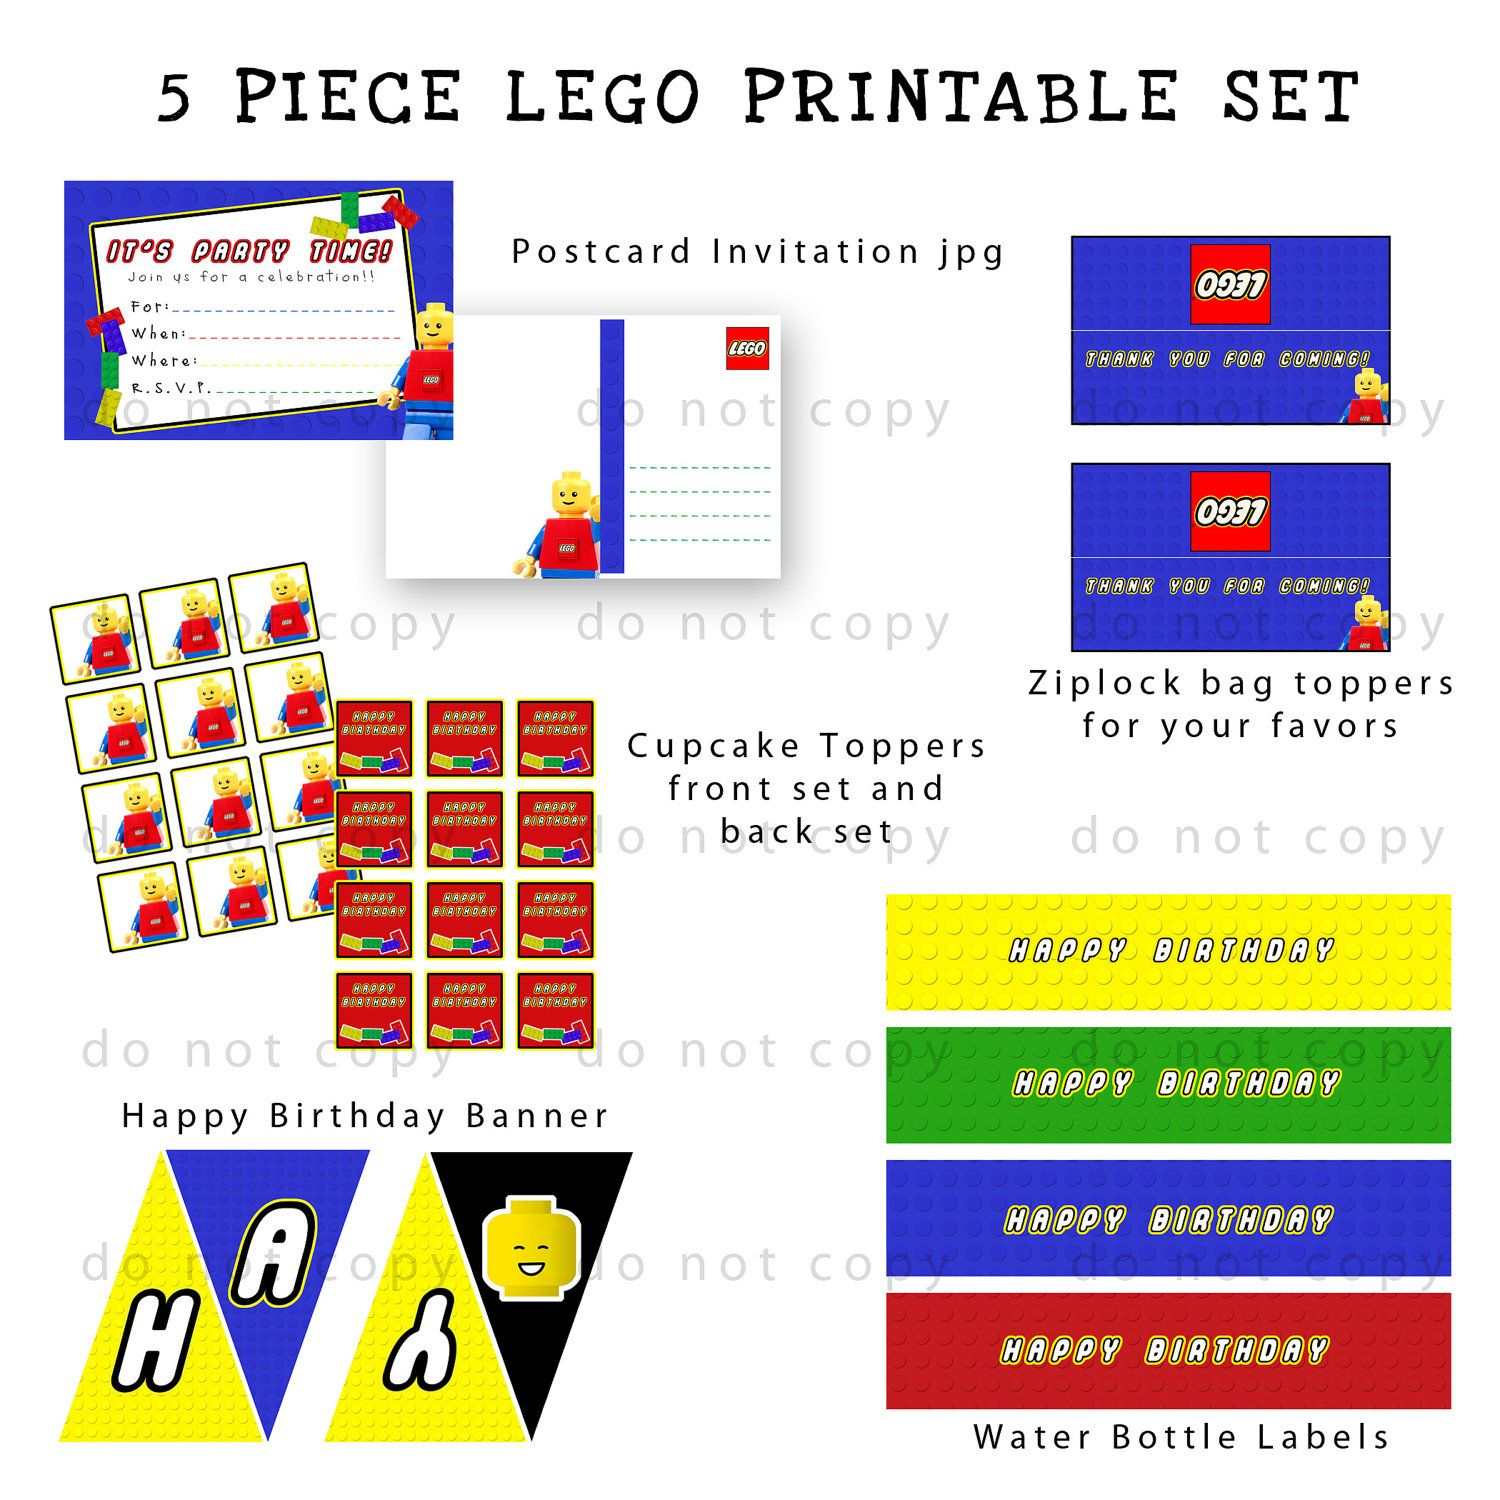 Lego party printable set baby shower ideas pinterest lego party printable set filmwisefo